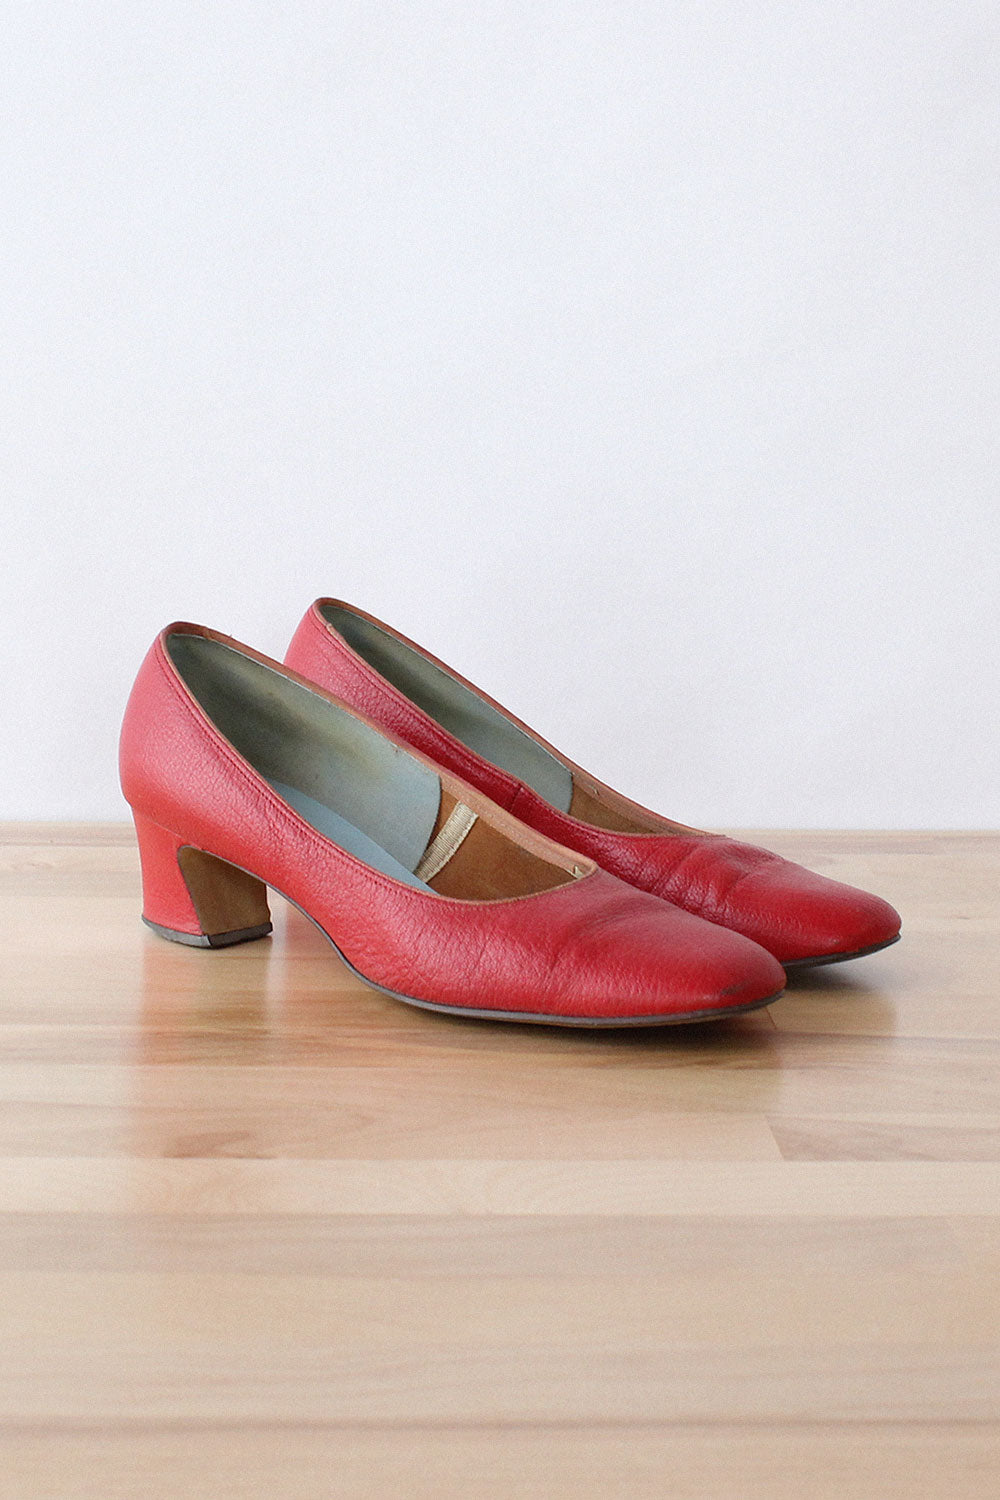 Brick Red Leather Heels 7 1/2